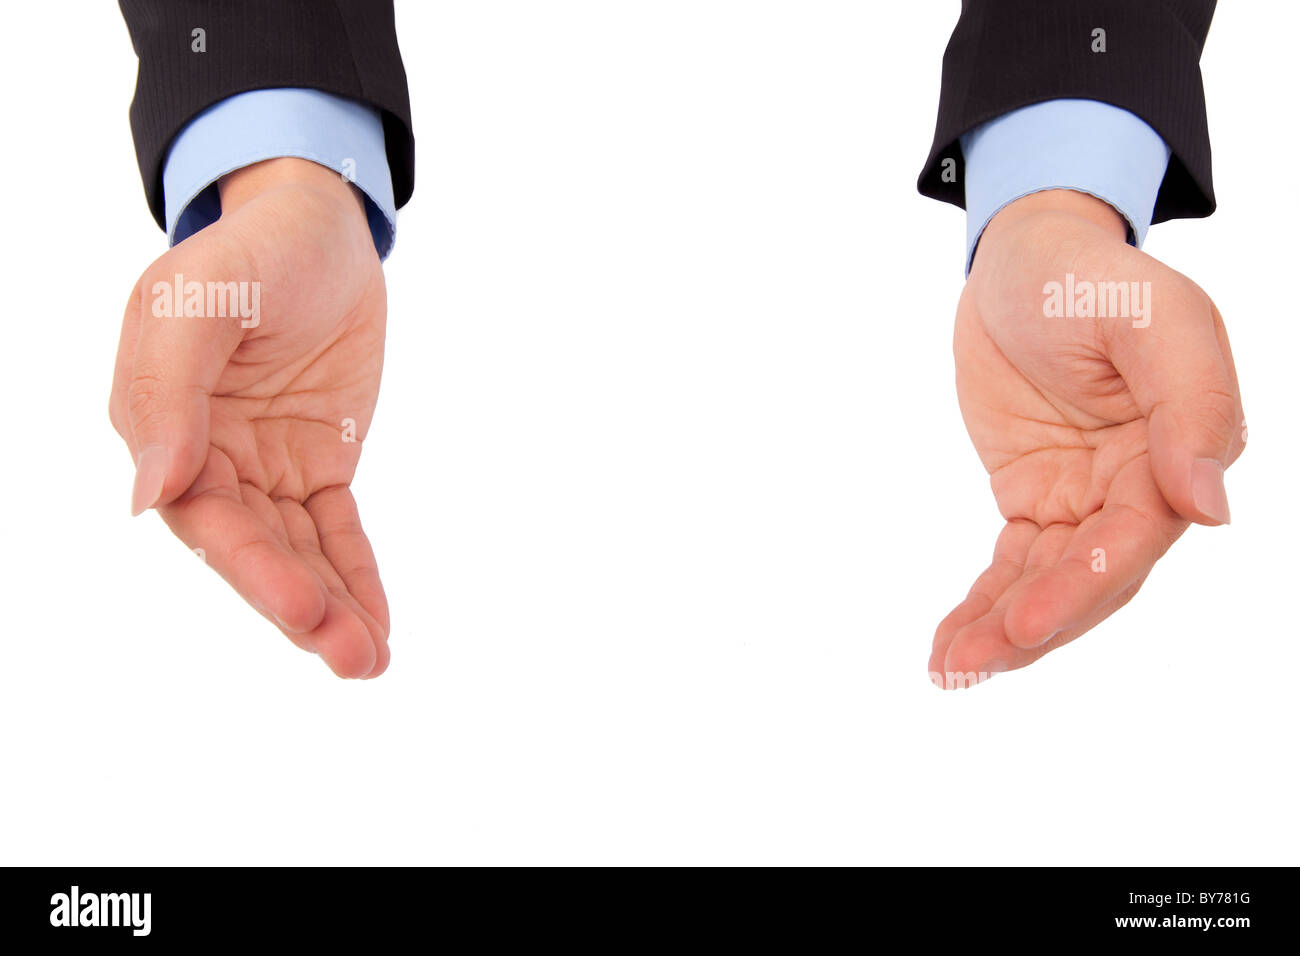 Businessman 's hand holding something and isolated on white background - Stock Image